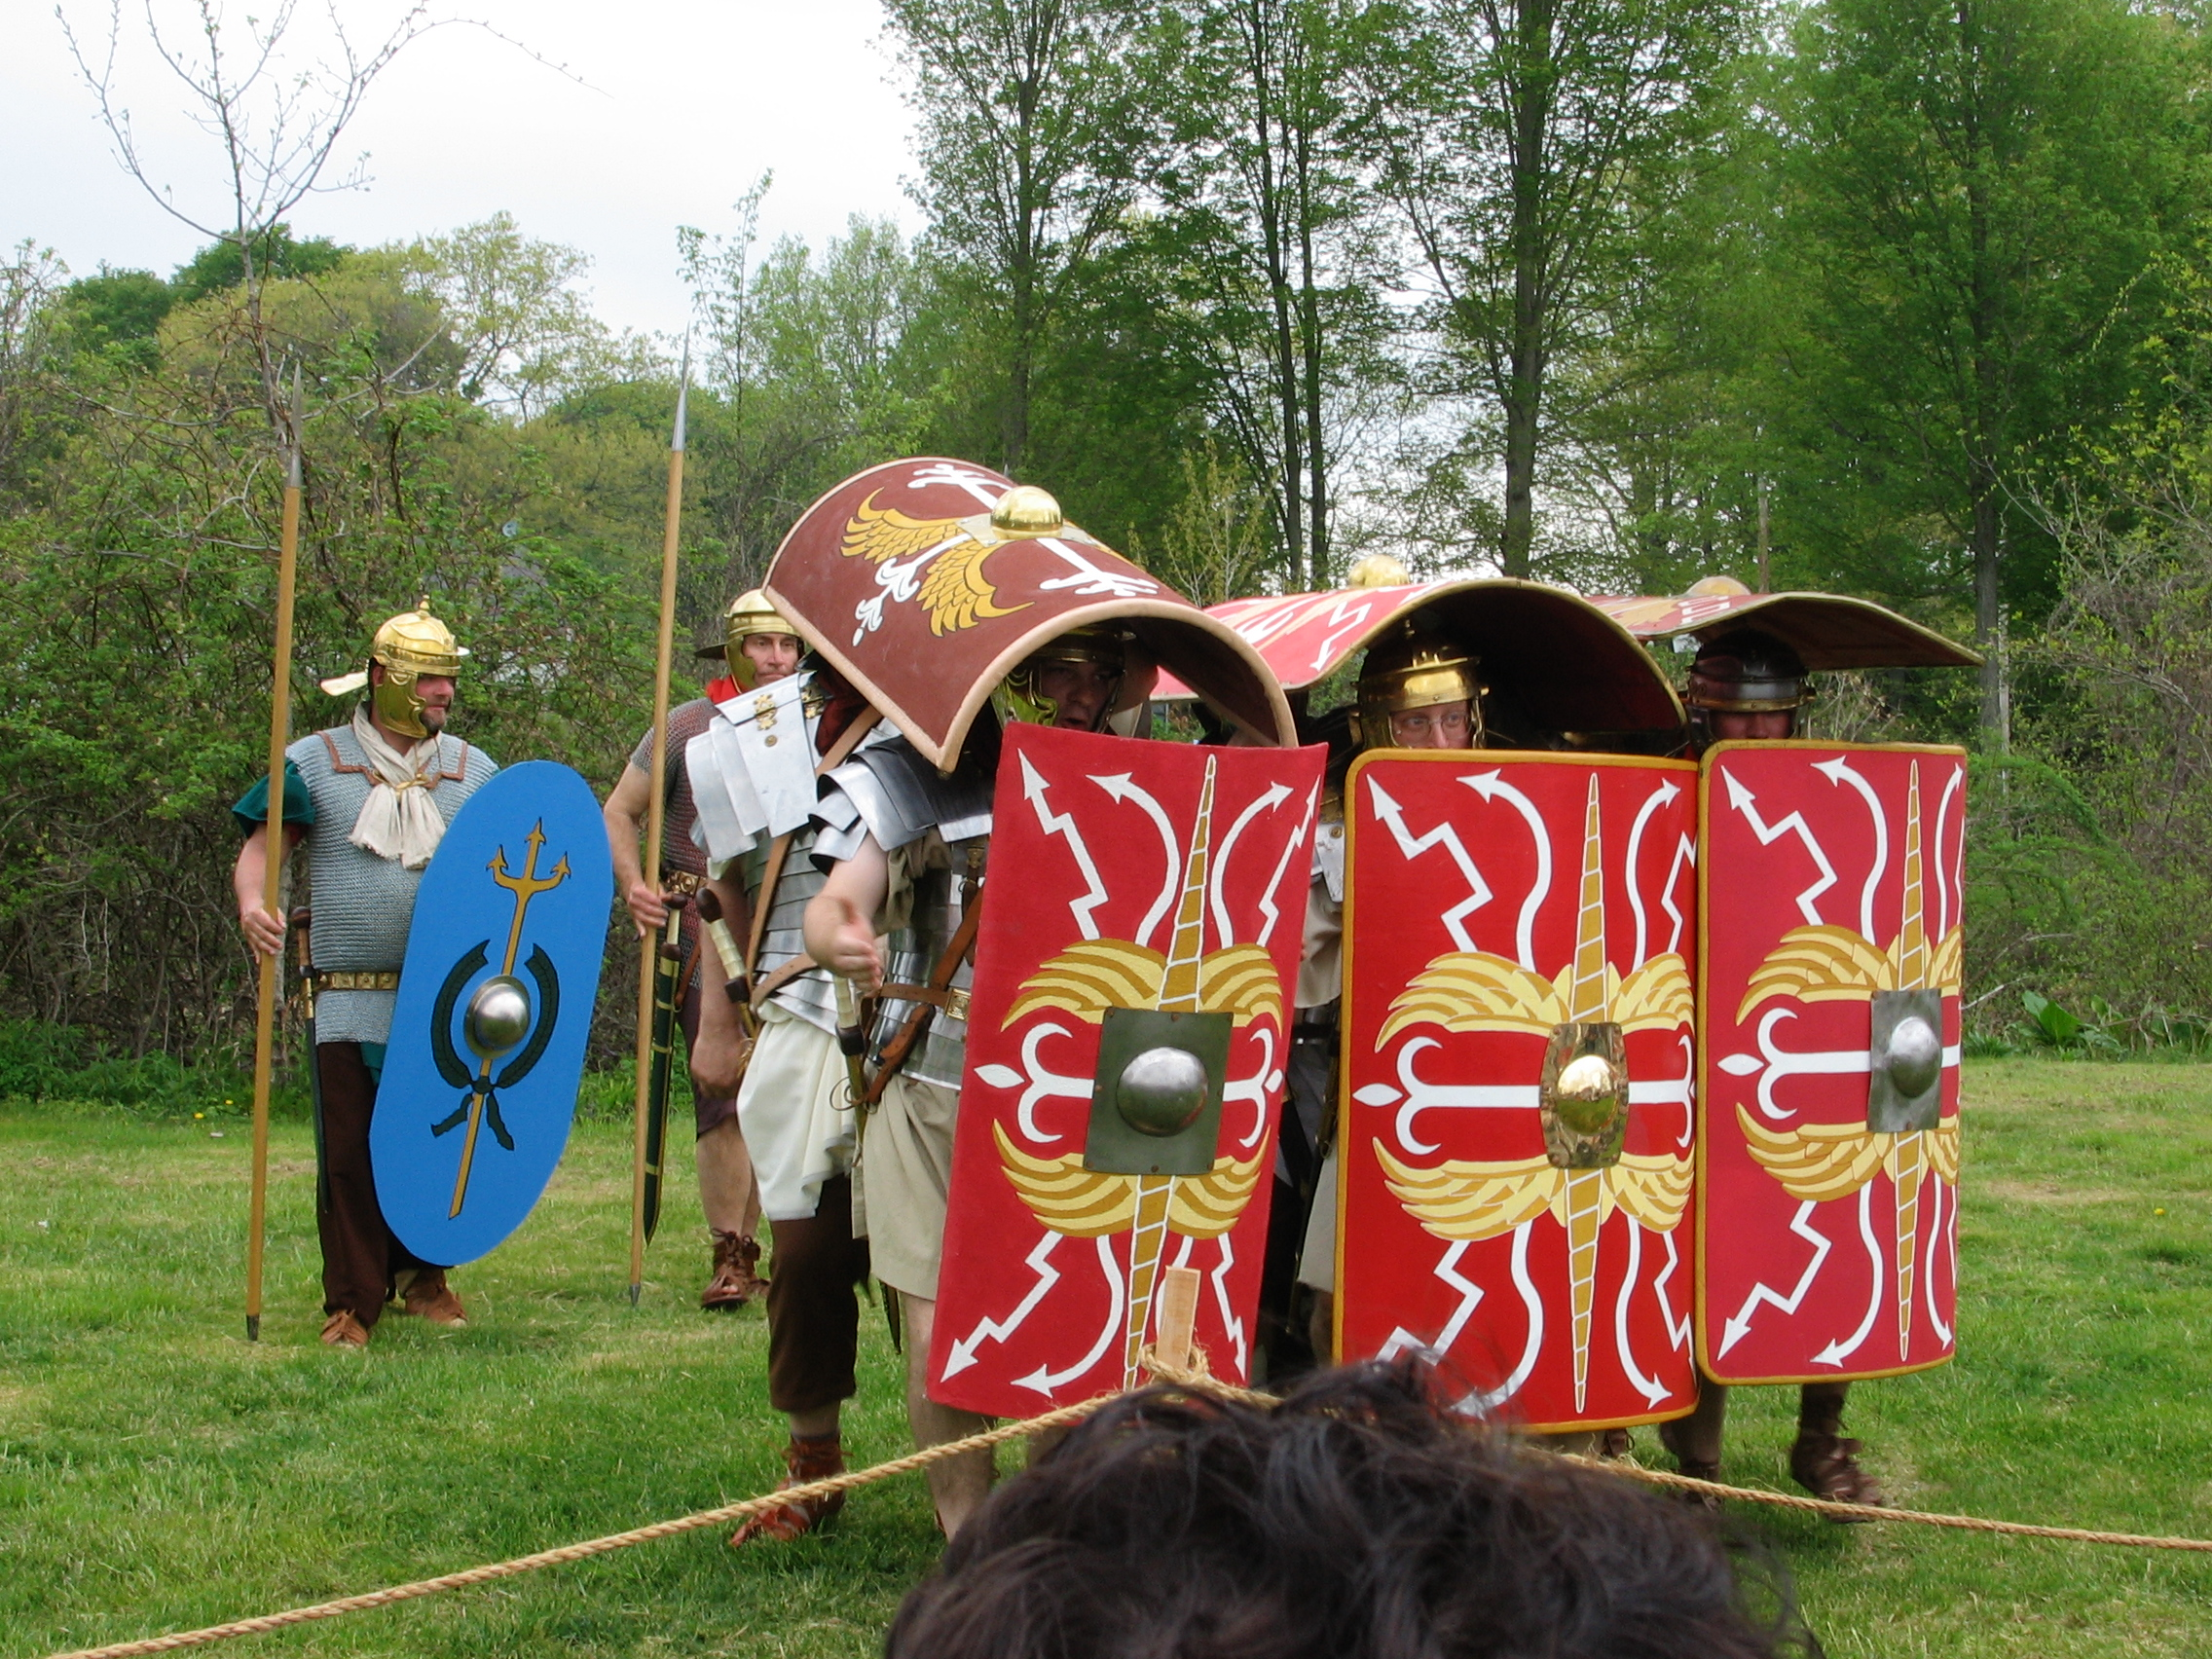 Roman re-enactors demonstrate a testudo formation (The Tortoise).